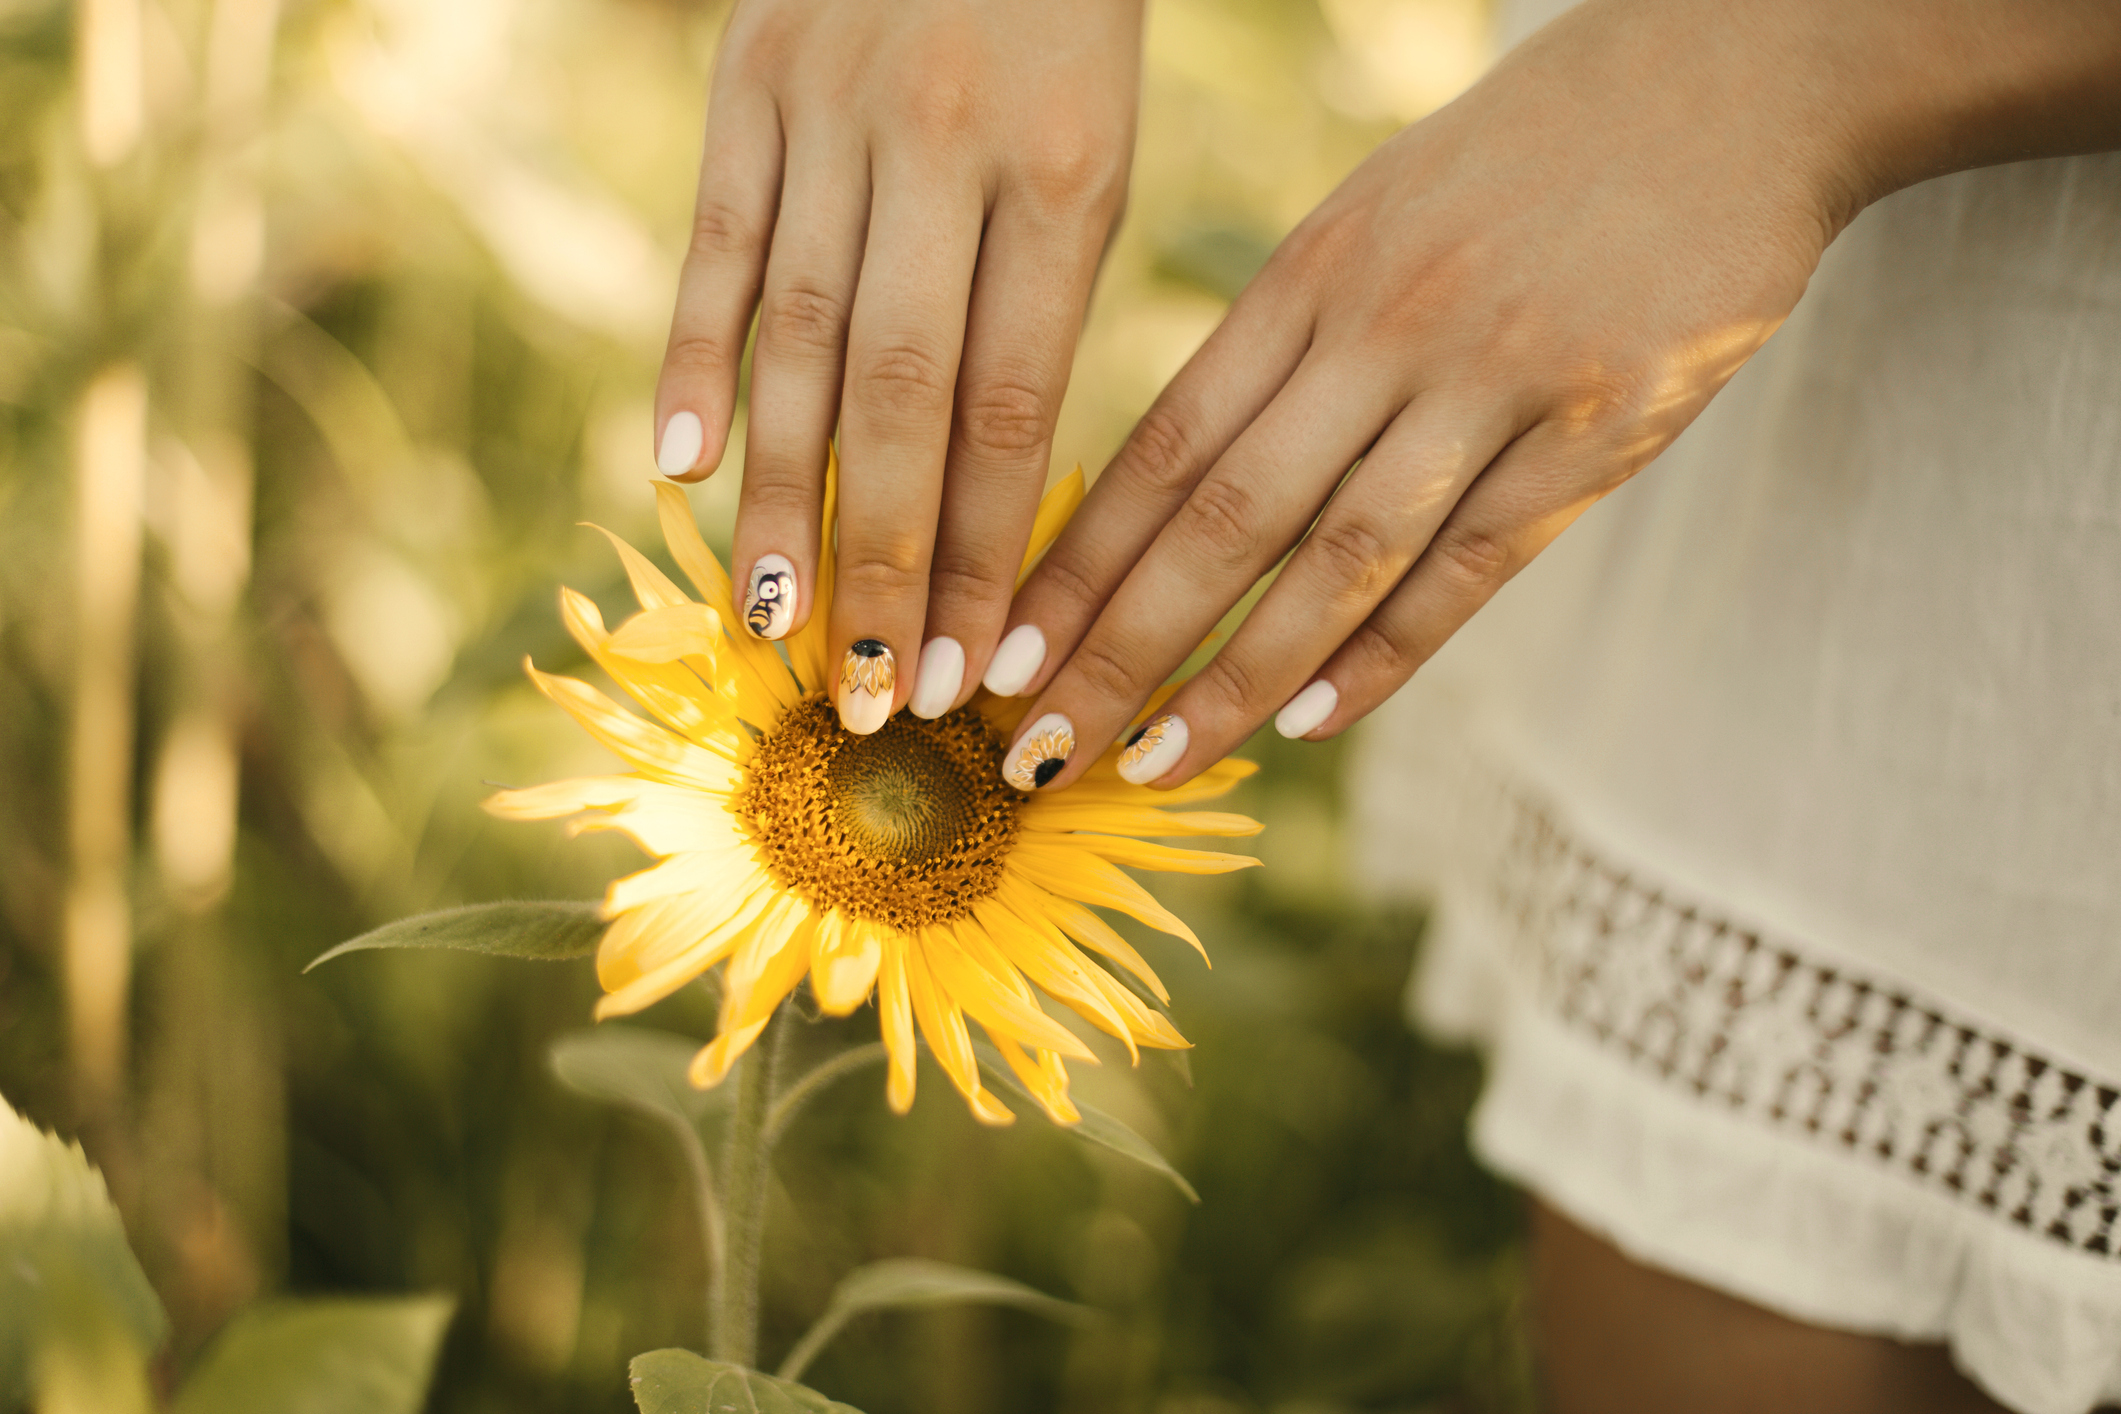 Sunflower nails are the peak summer mani trend you need on your fingertips